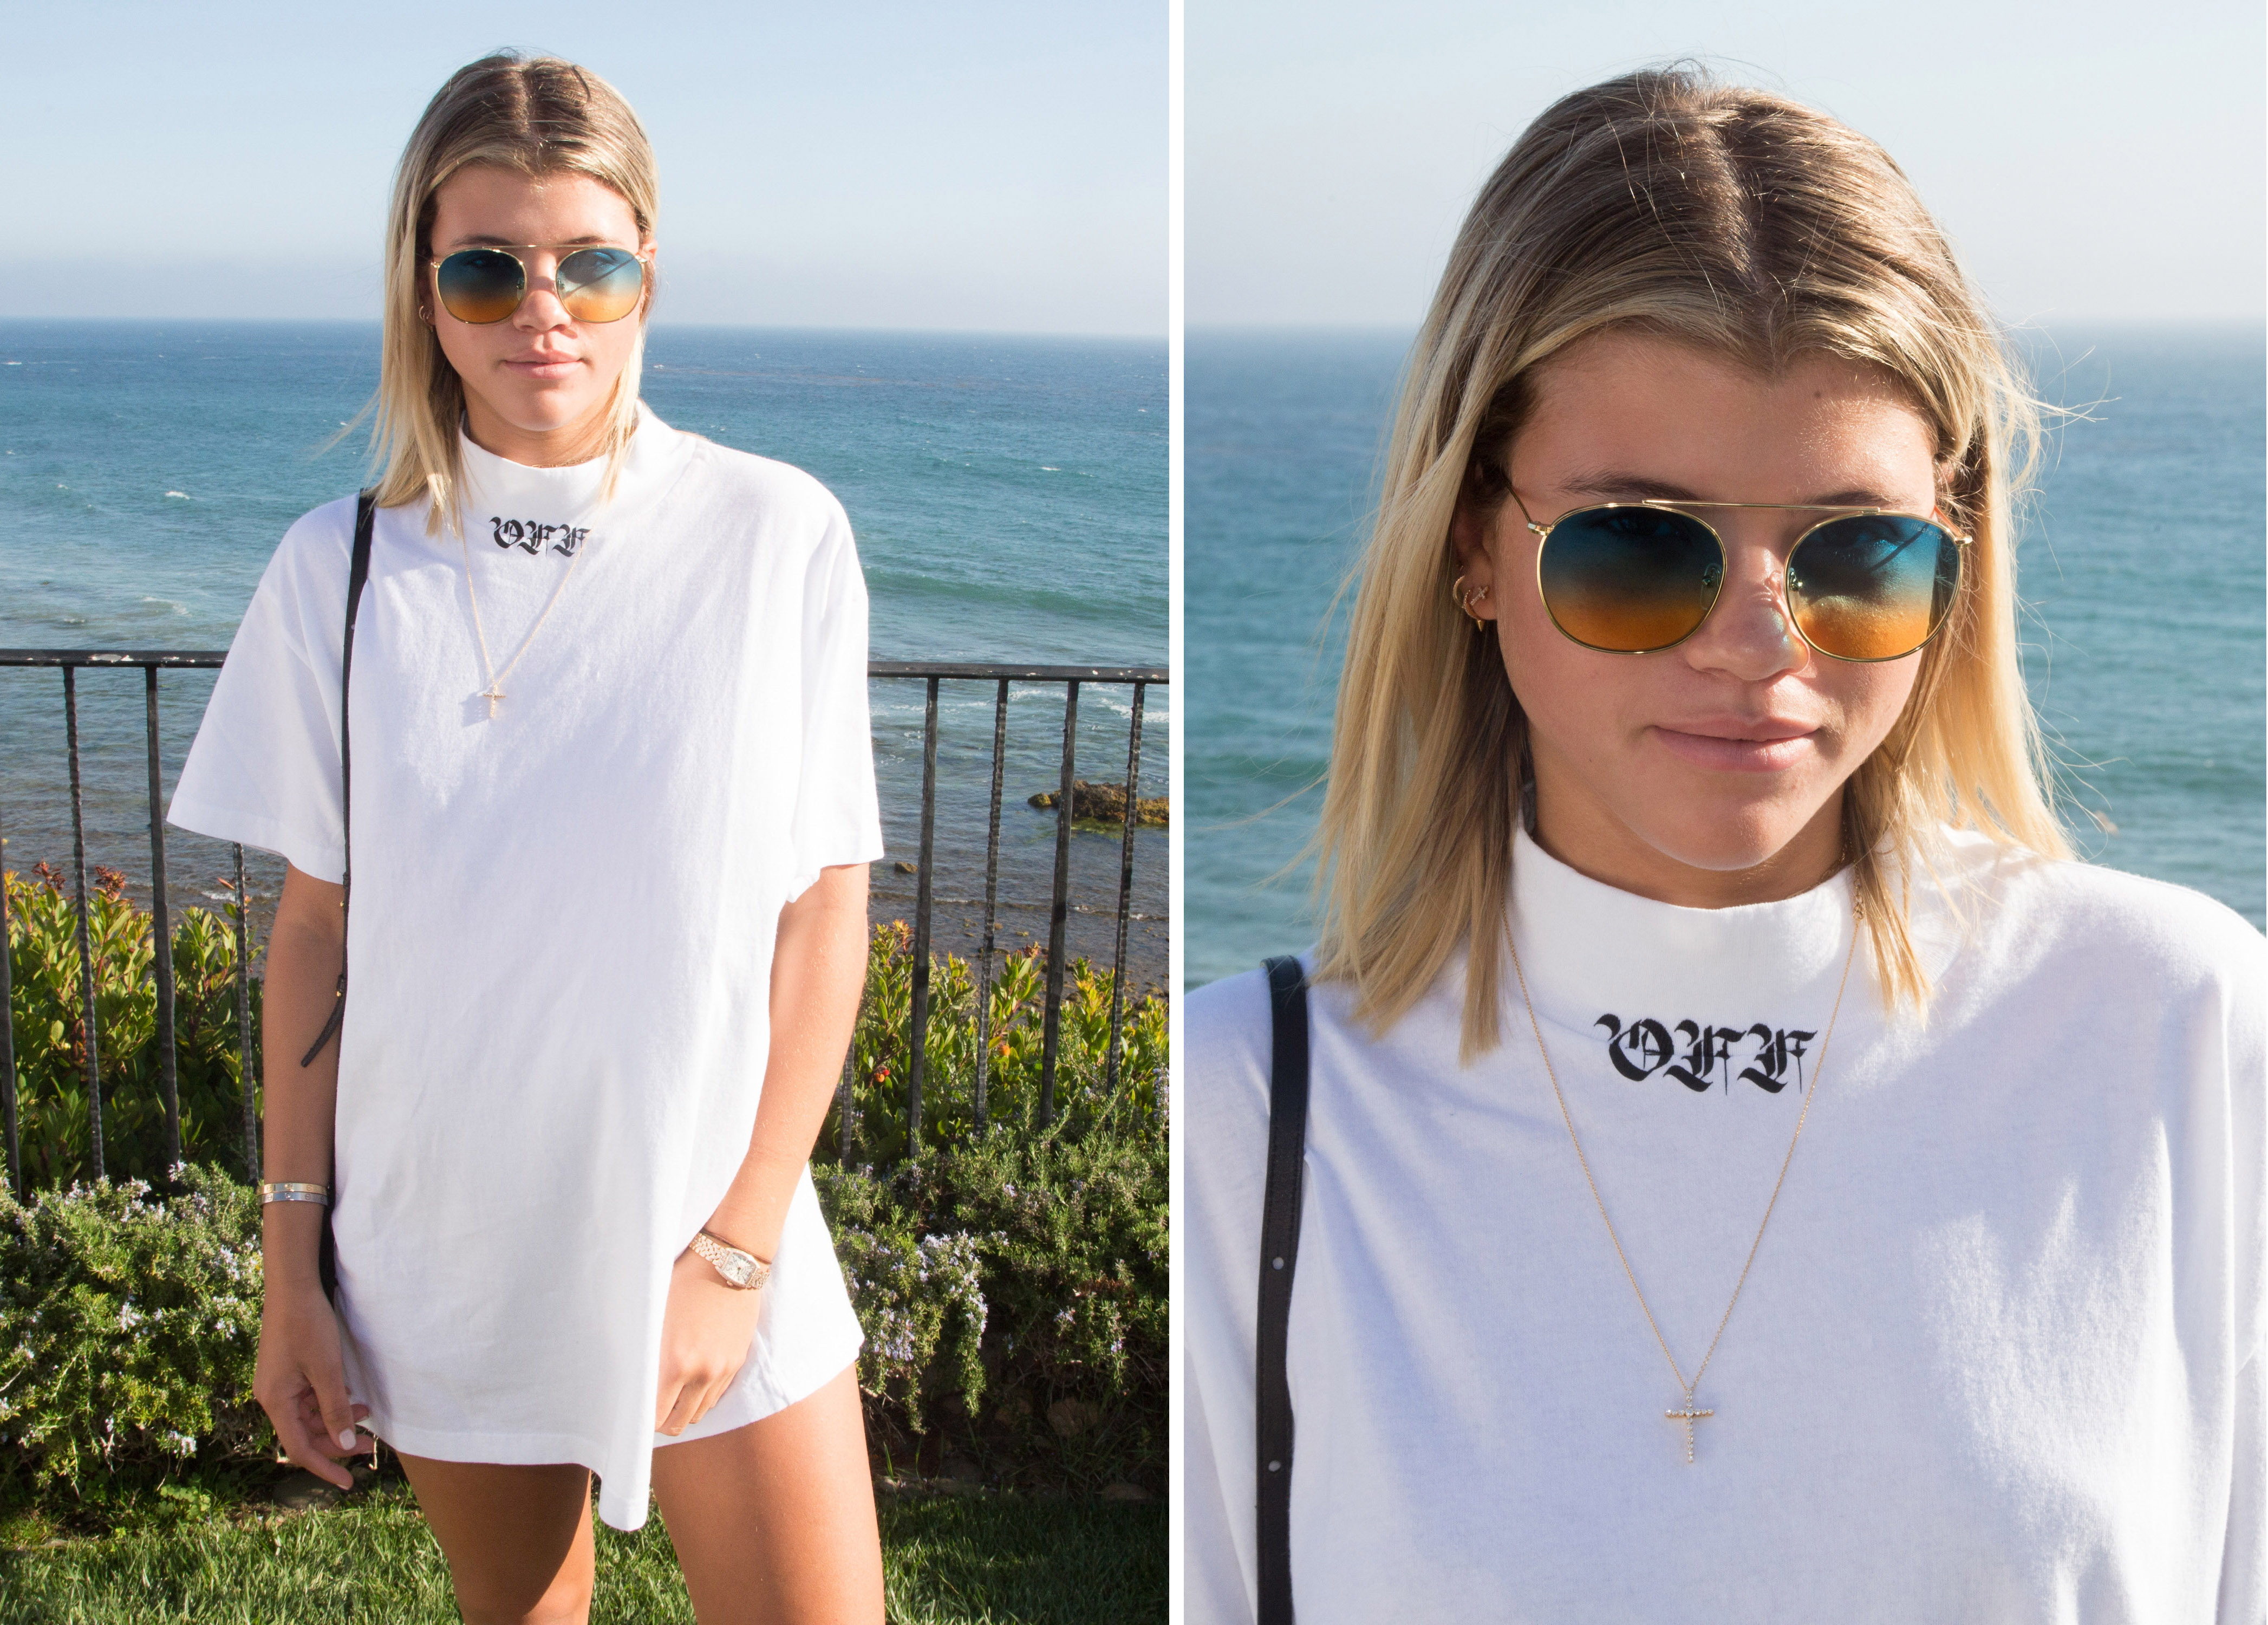 MALIBU, CA - SEPTEMBER 17: Sofia Richie attends the Treats! Magazine 4th Annual White Party Sponsored By Stella Artois on September 17, 2016 in Malibu, California. (Photo by Gabriel Olsen/WireImage)